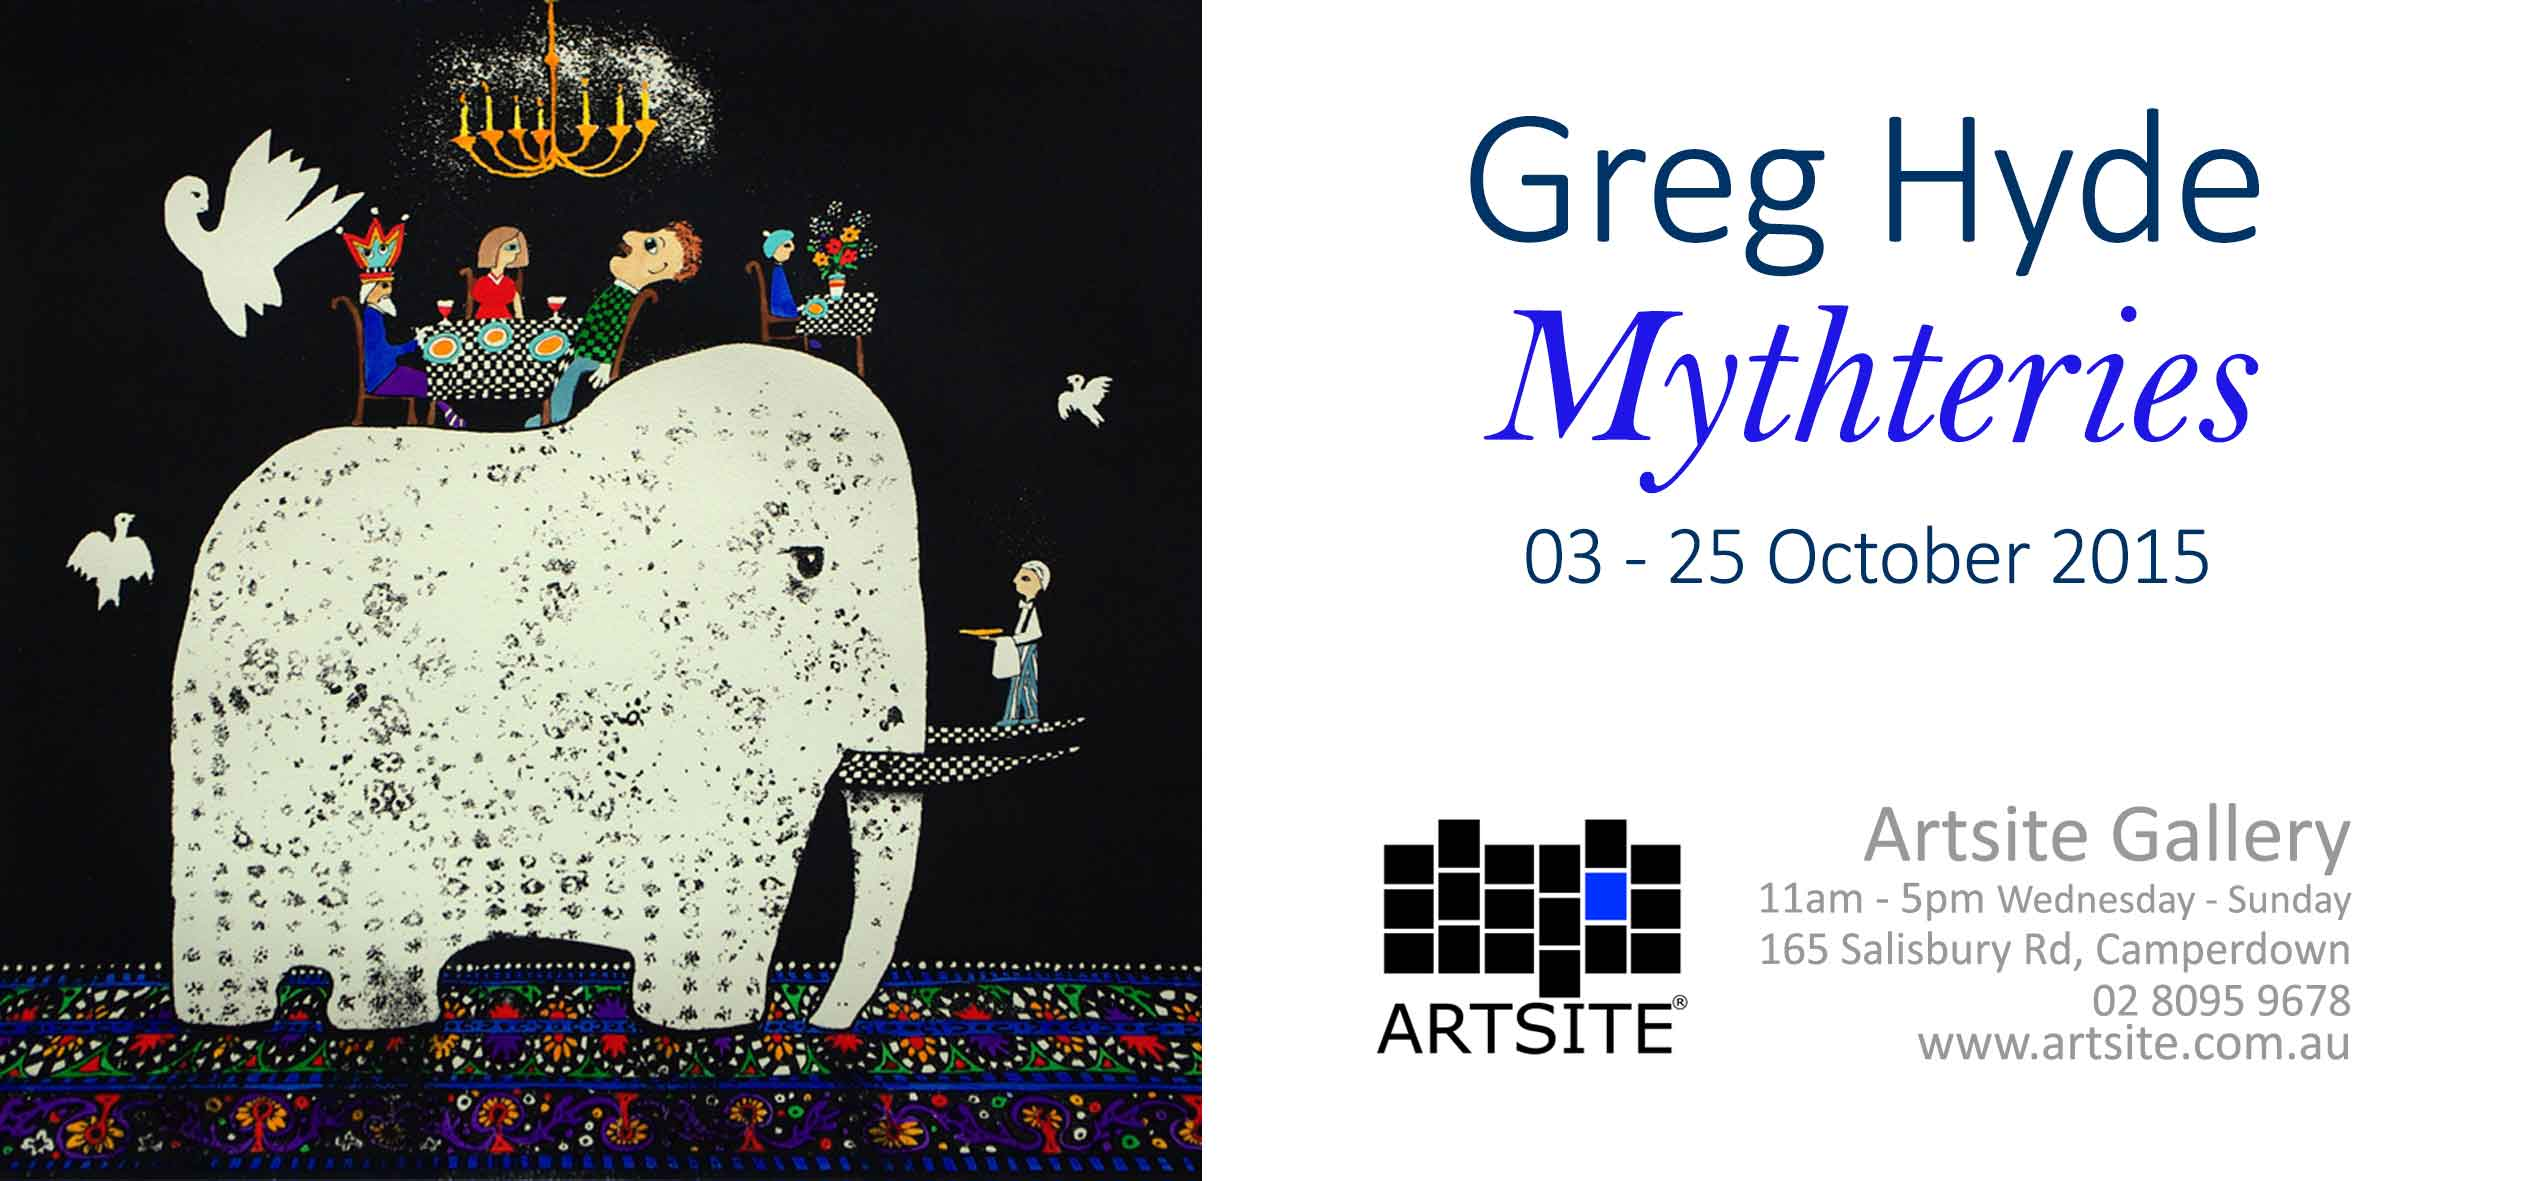 View Exhibition at Artsite Gallery, Sydney: 03 - 25 October 2015: Greg Hyde - Mythteries